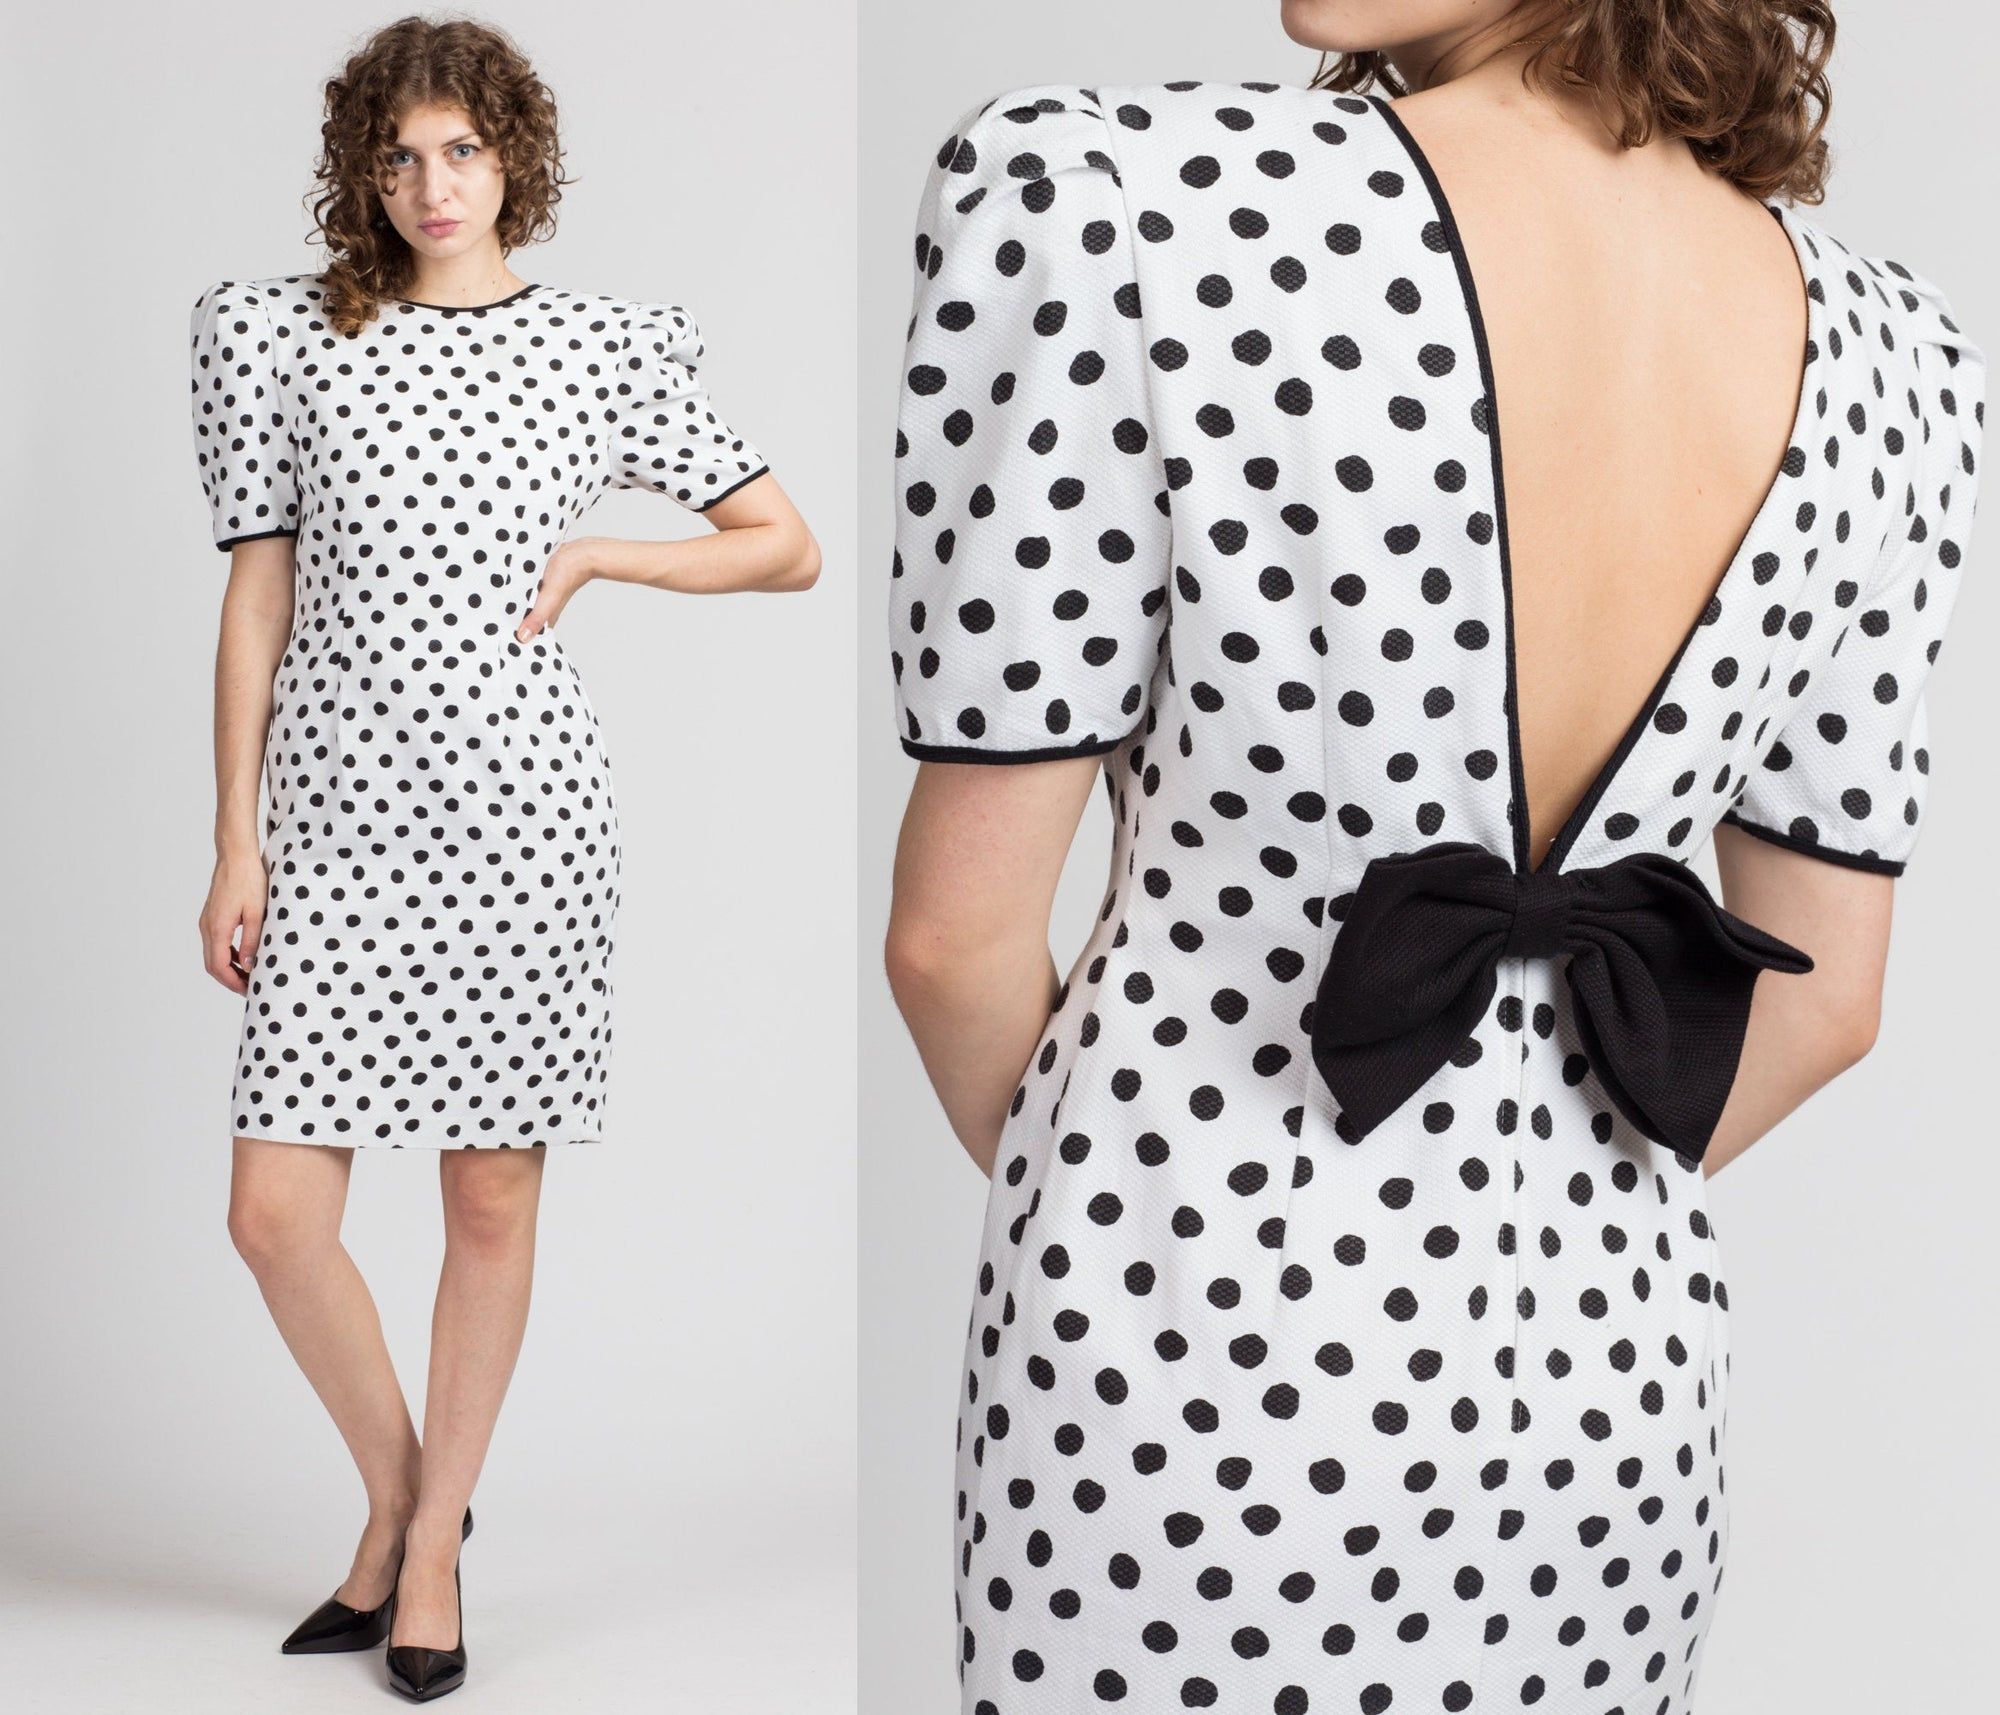 80s Polka Dot Low Back Party Dress - Medium